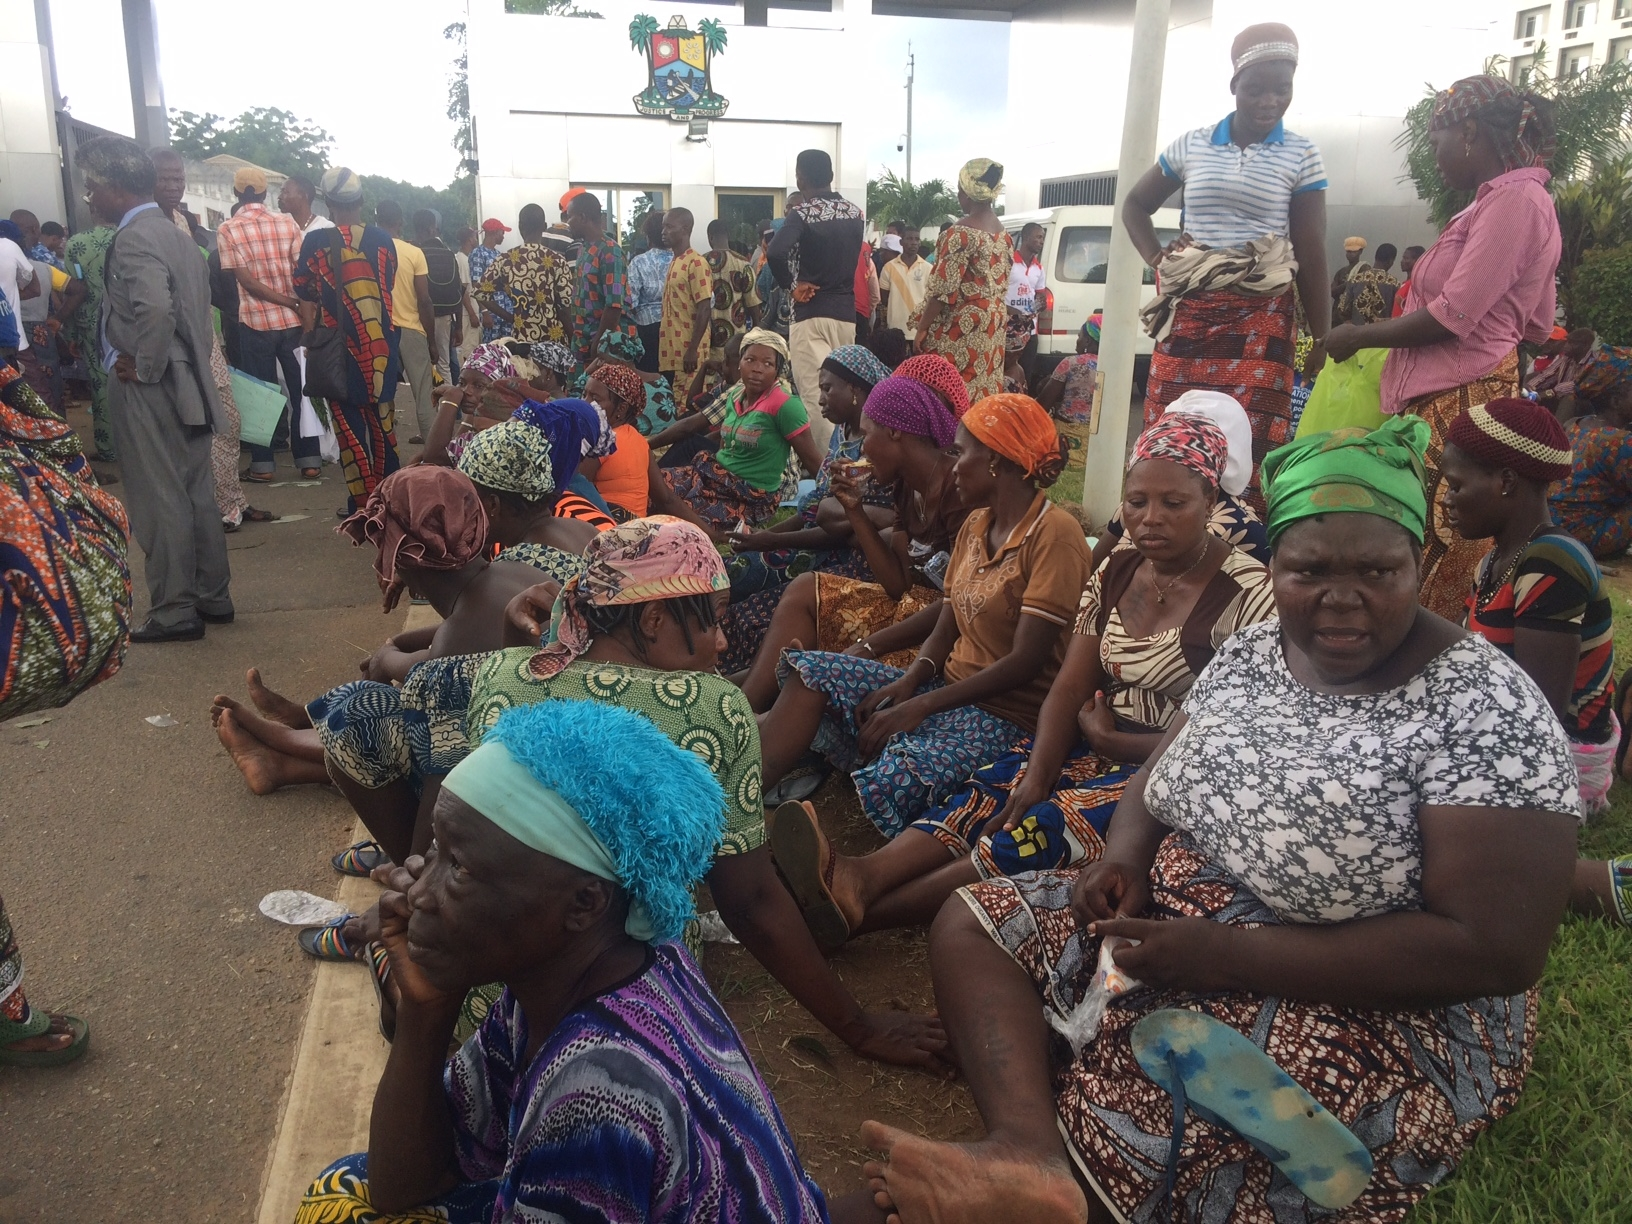 On Day 1 of #SavetheWaterfront protests in Lagos, hundreds from affected communities wait outside Governor's office